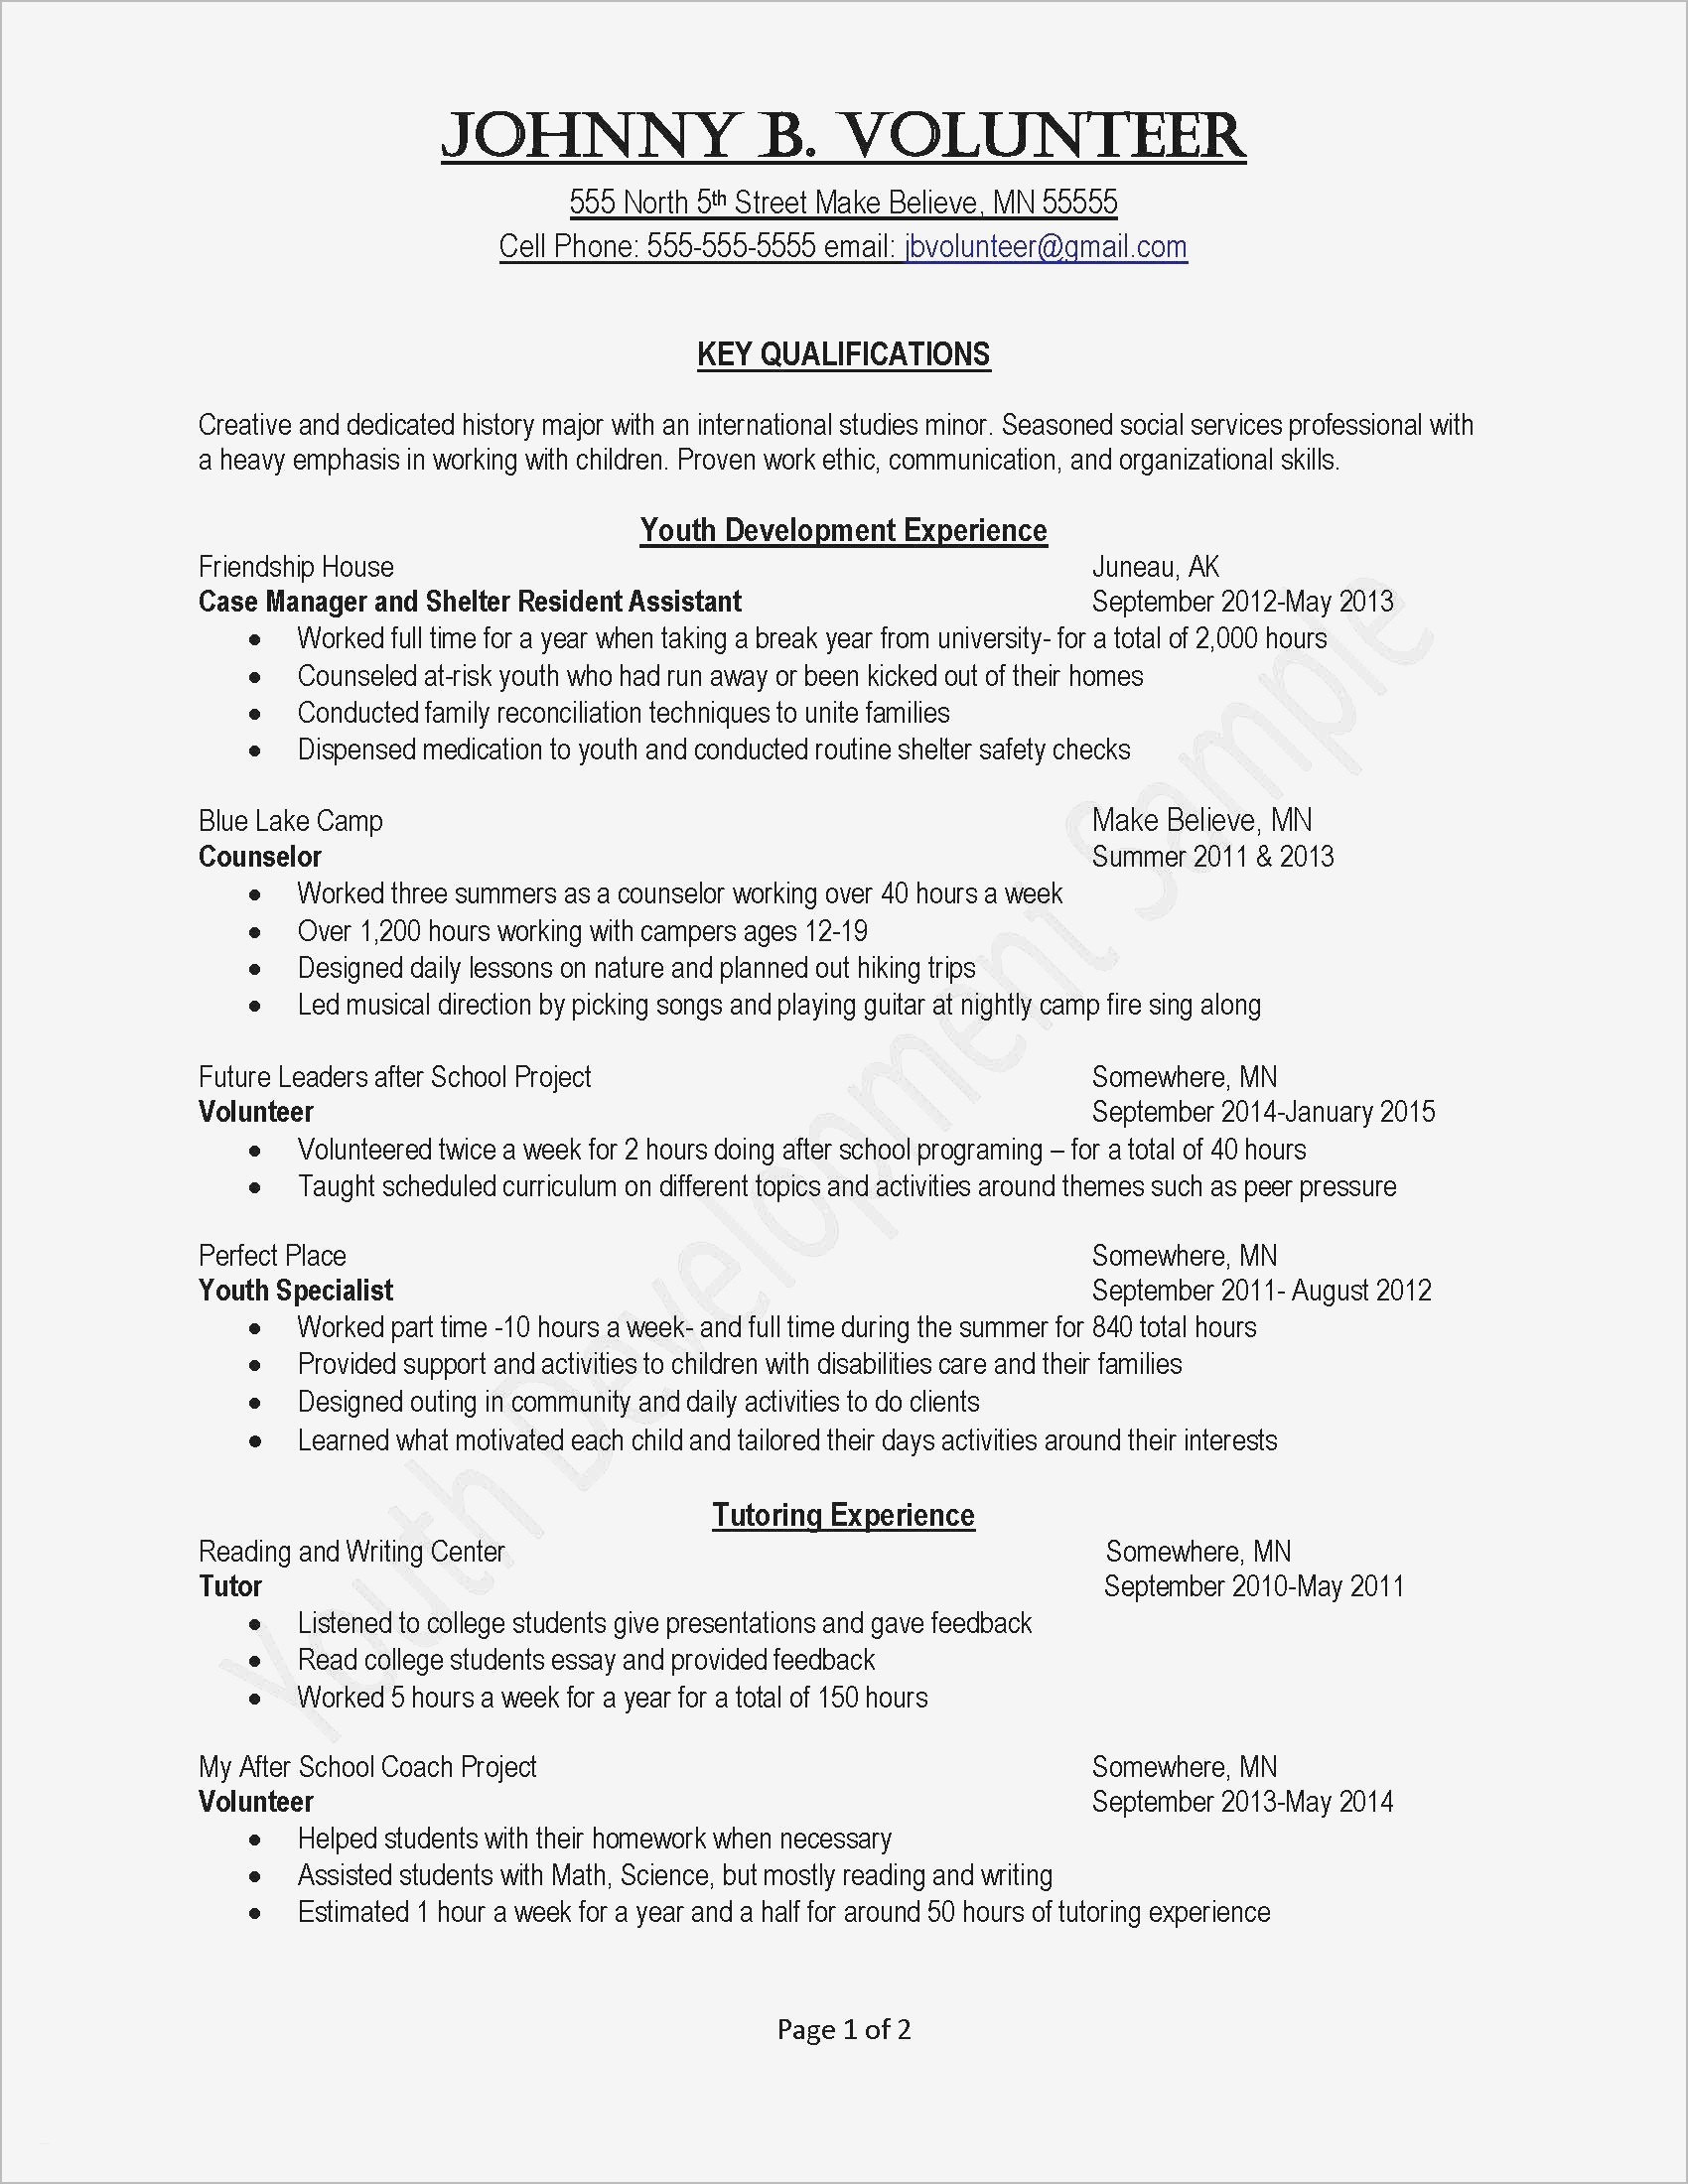 Free Cover Letter Template - Free Cover Letter and Resume Templates Best Job Fer Letter